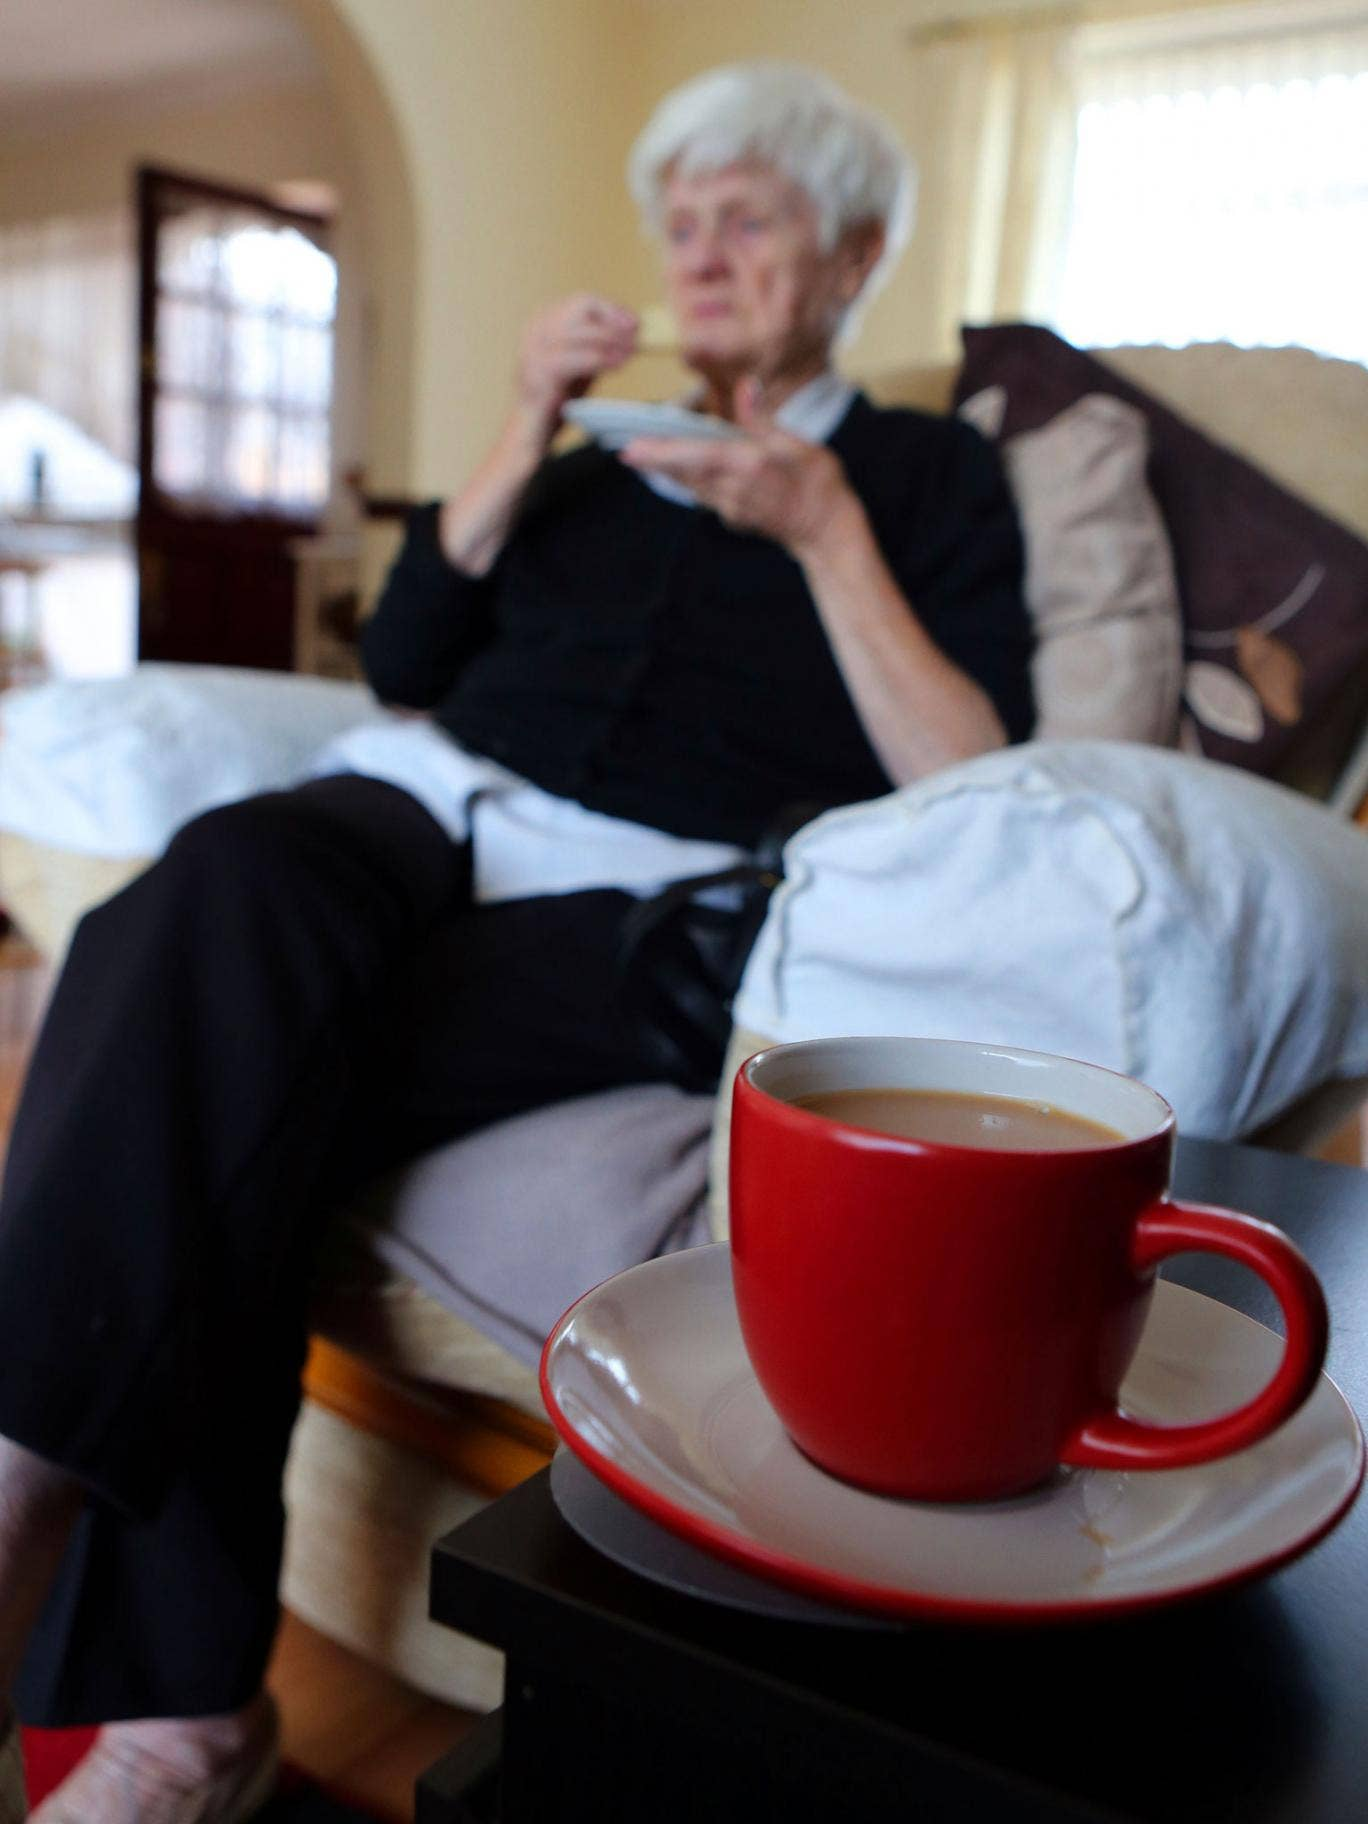 One in every 25 pensioners is facing Christmas alone this year, a poll suggests